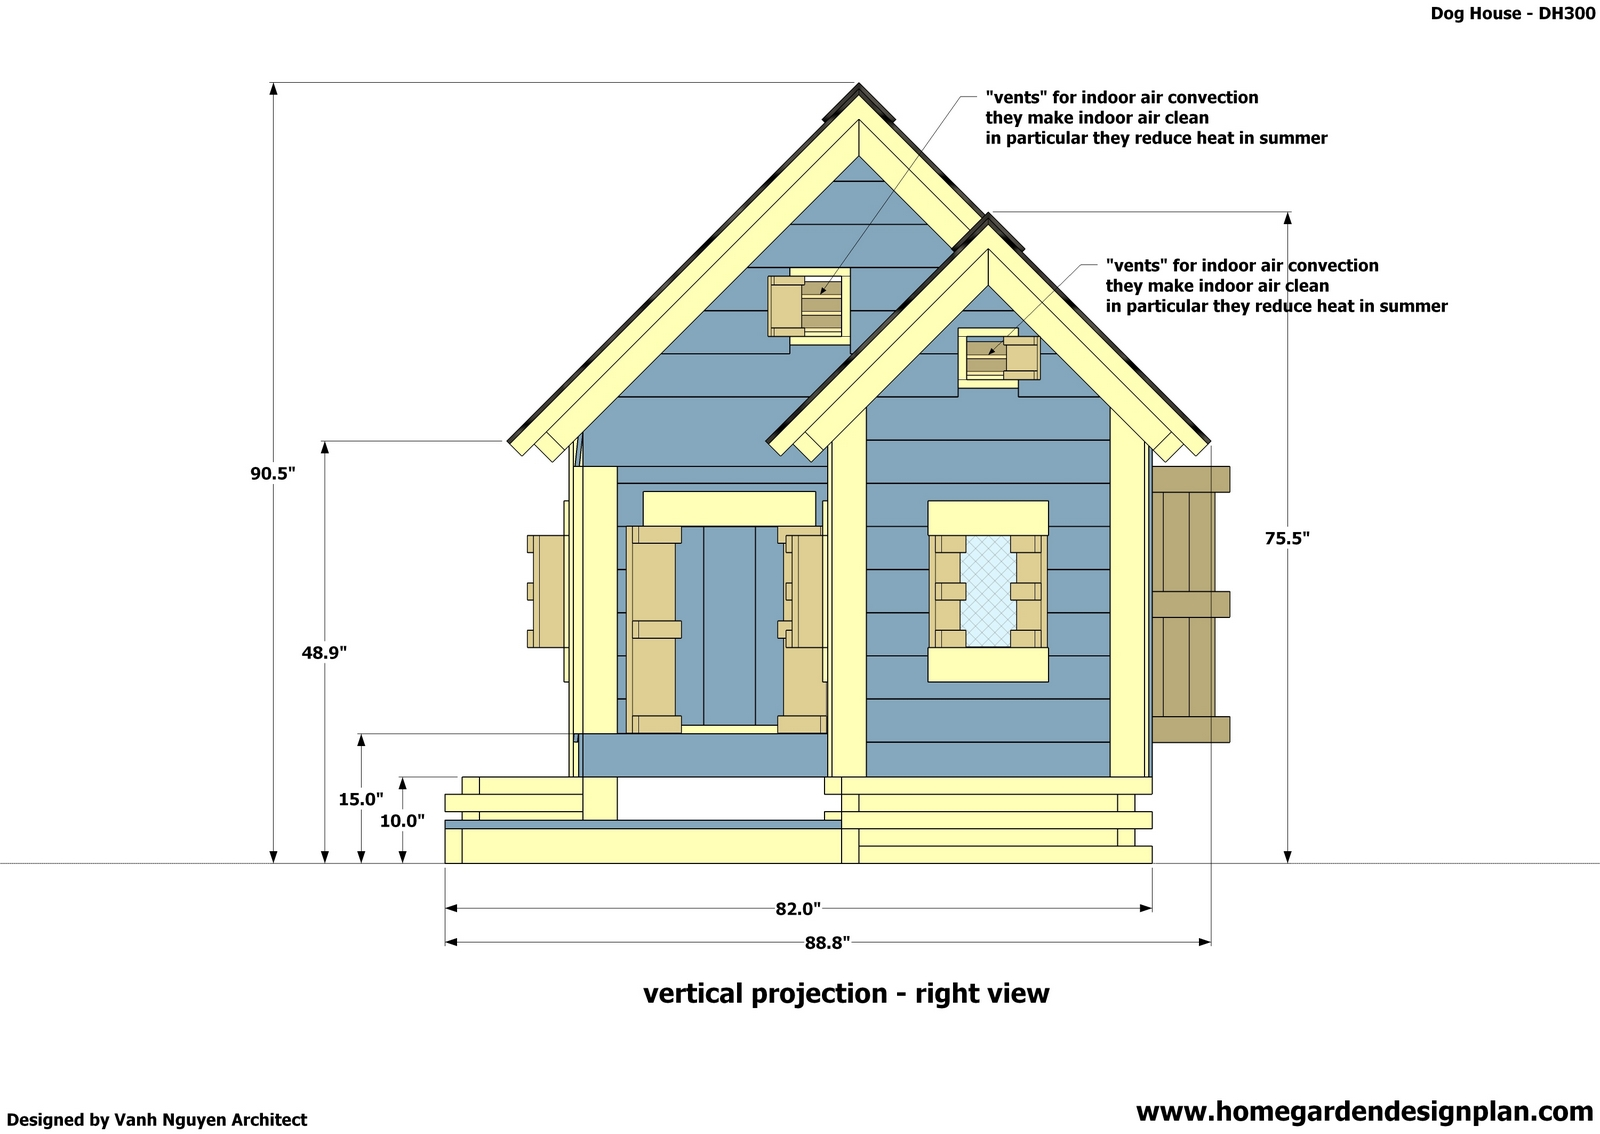 Free Winter Dog House Plans Floor Plans